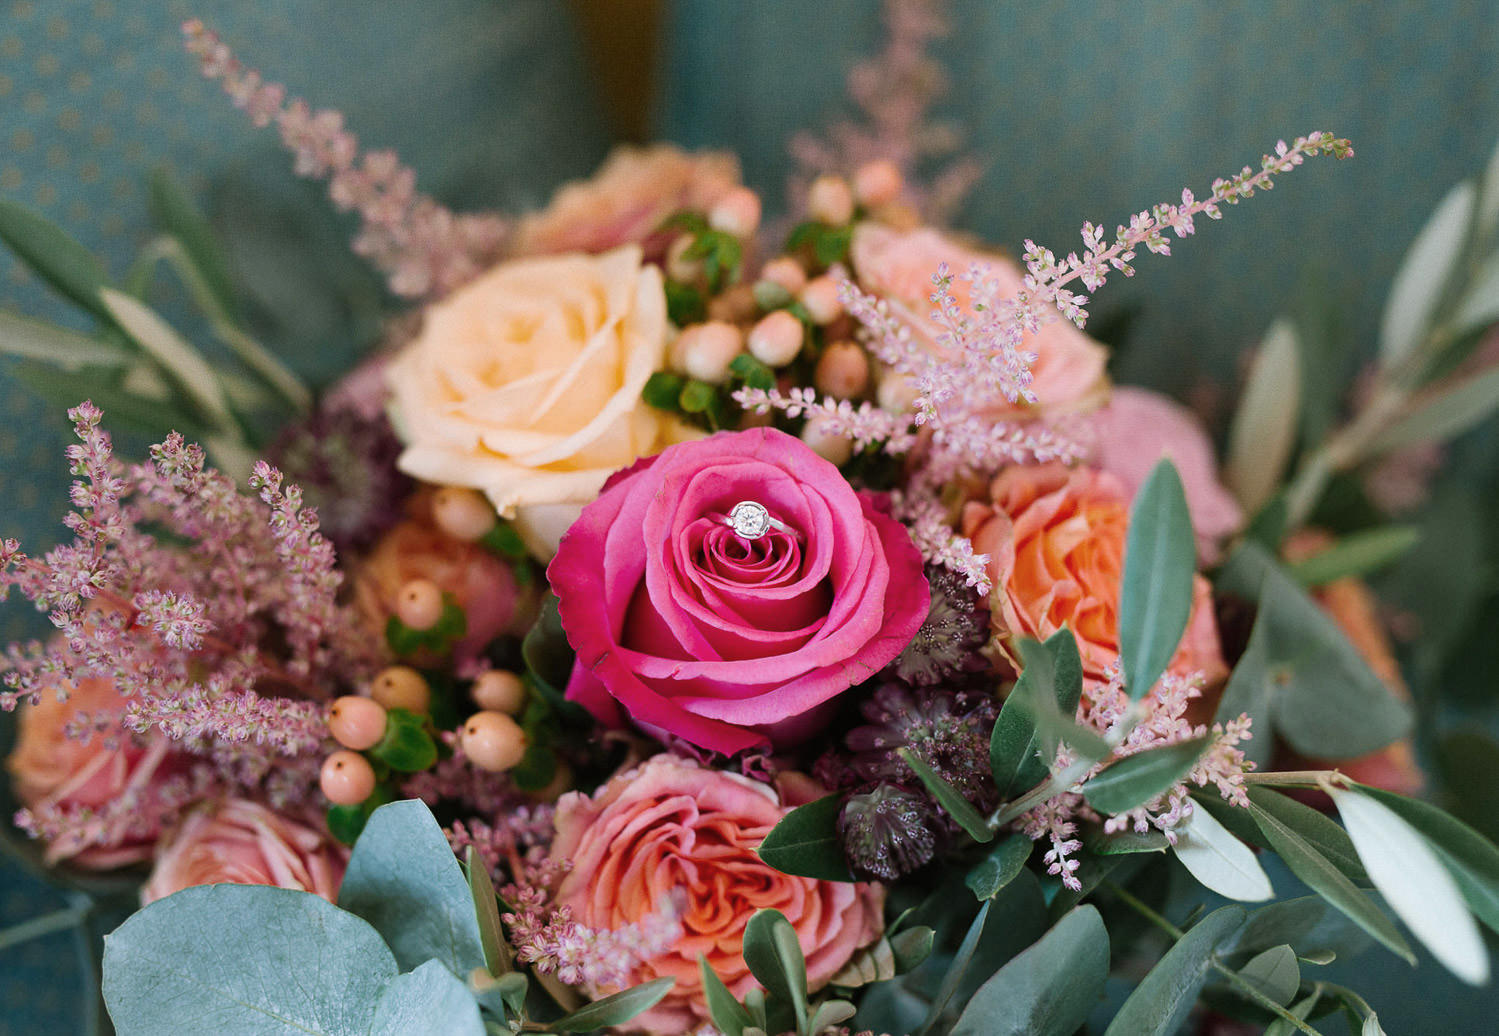 Lake Orta wedding , beautiful bouquet with engagement ring | Photo: Camilla Anchisi